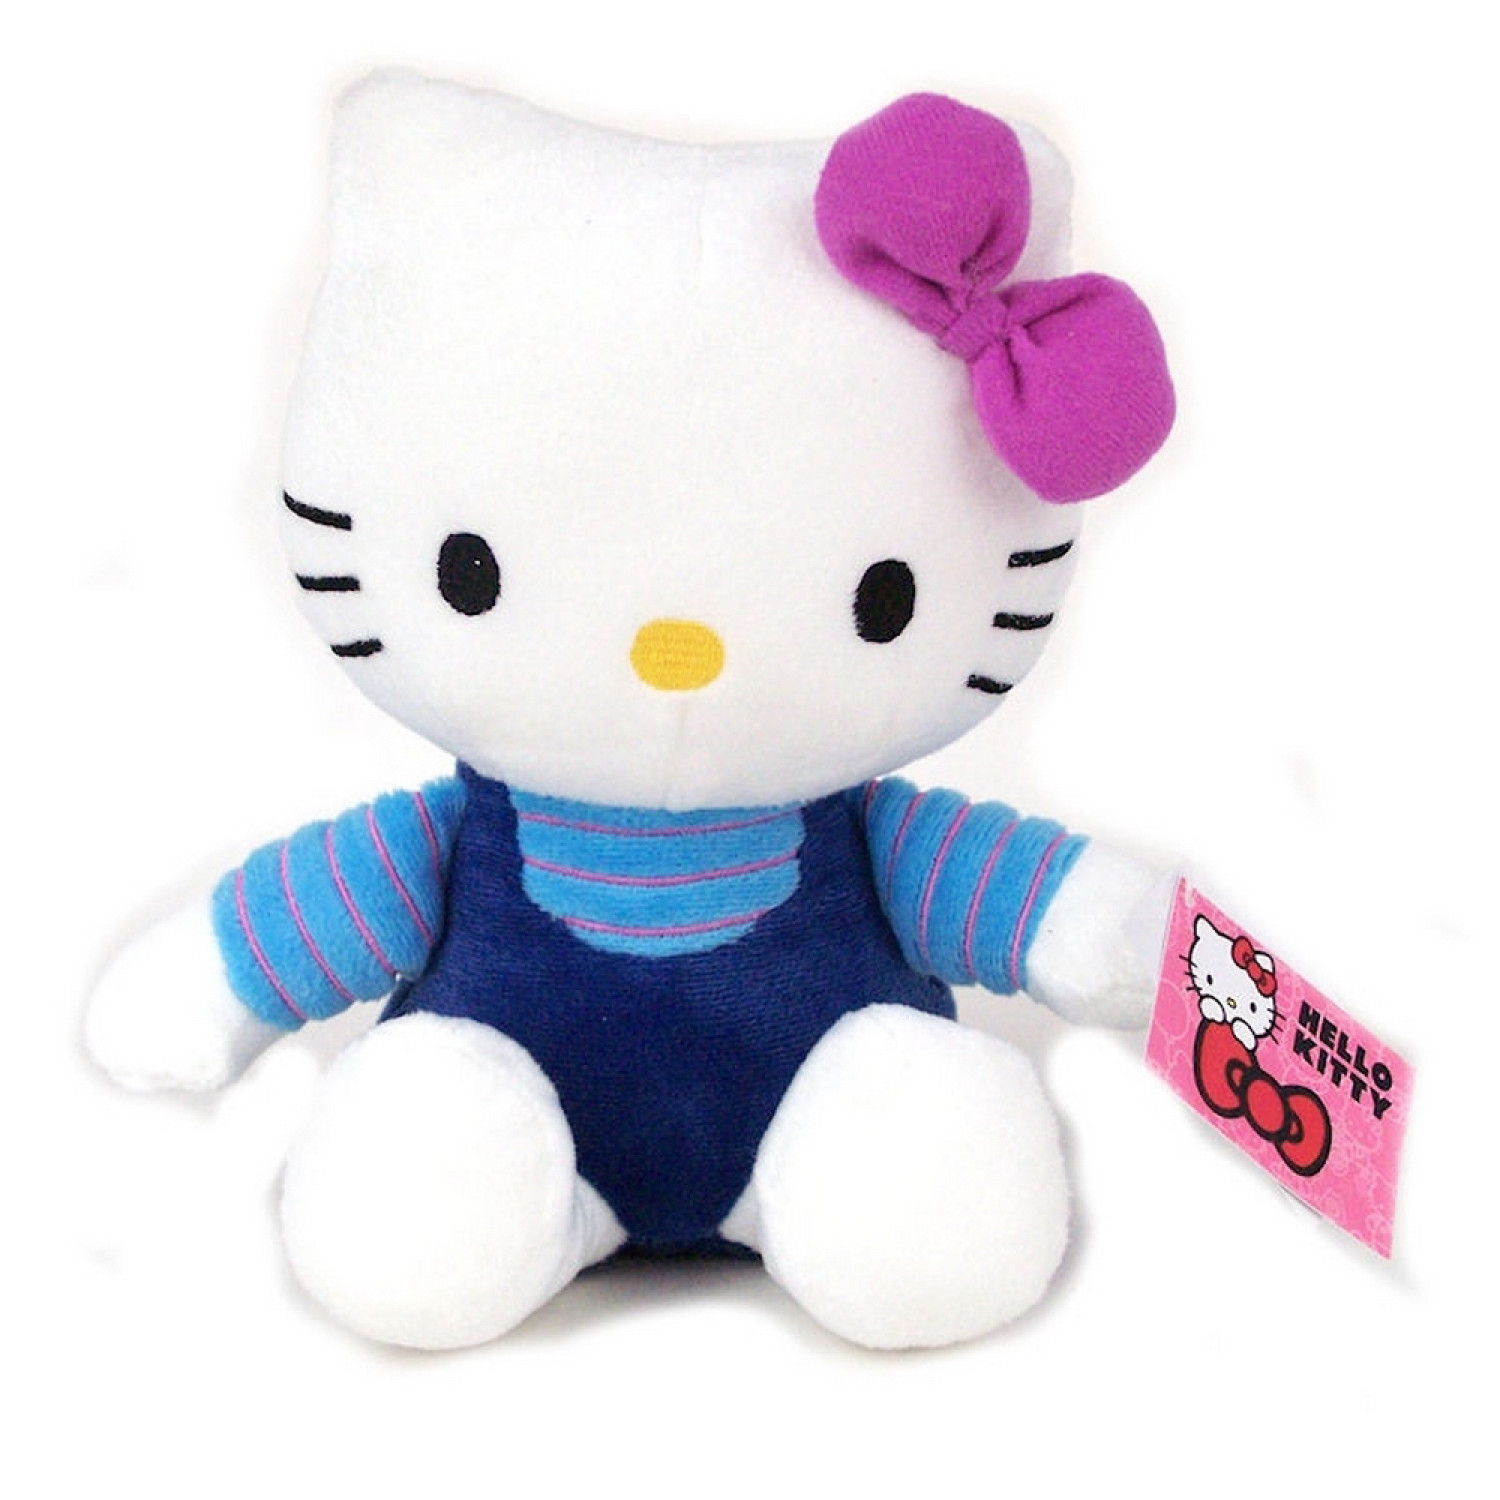 Hello Kitty - Peluche douce Kitty 20cm - Noeud Rose